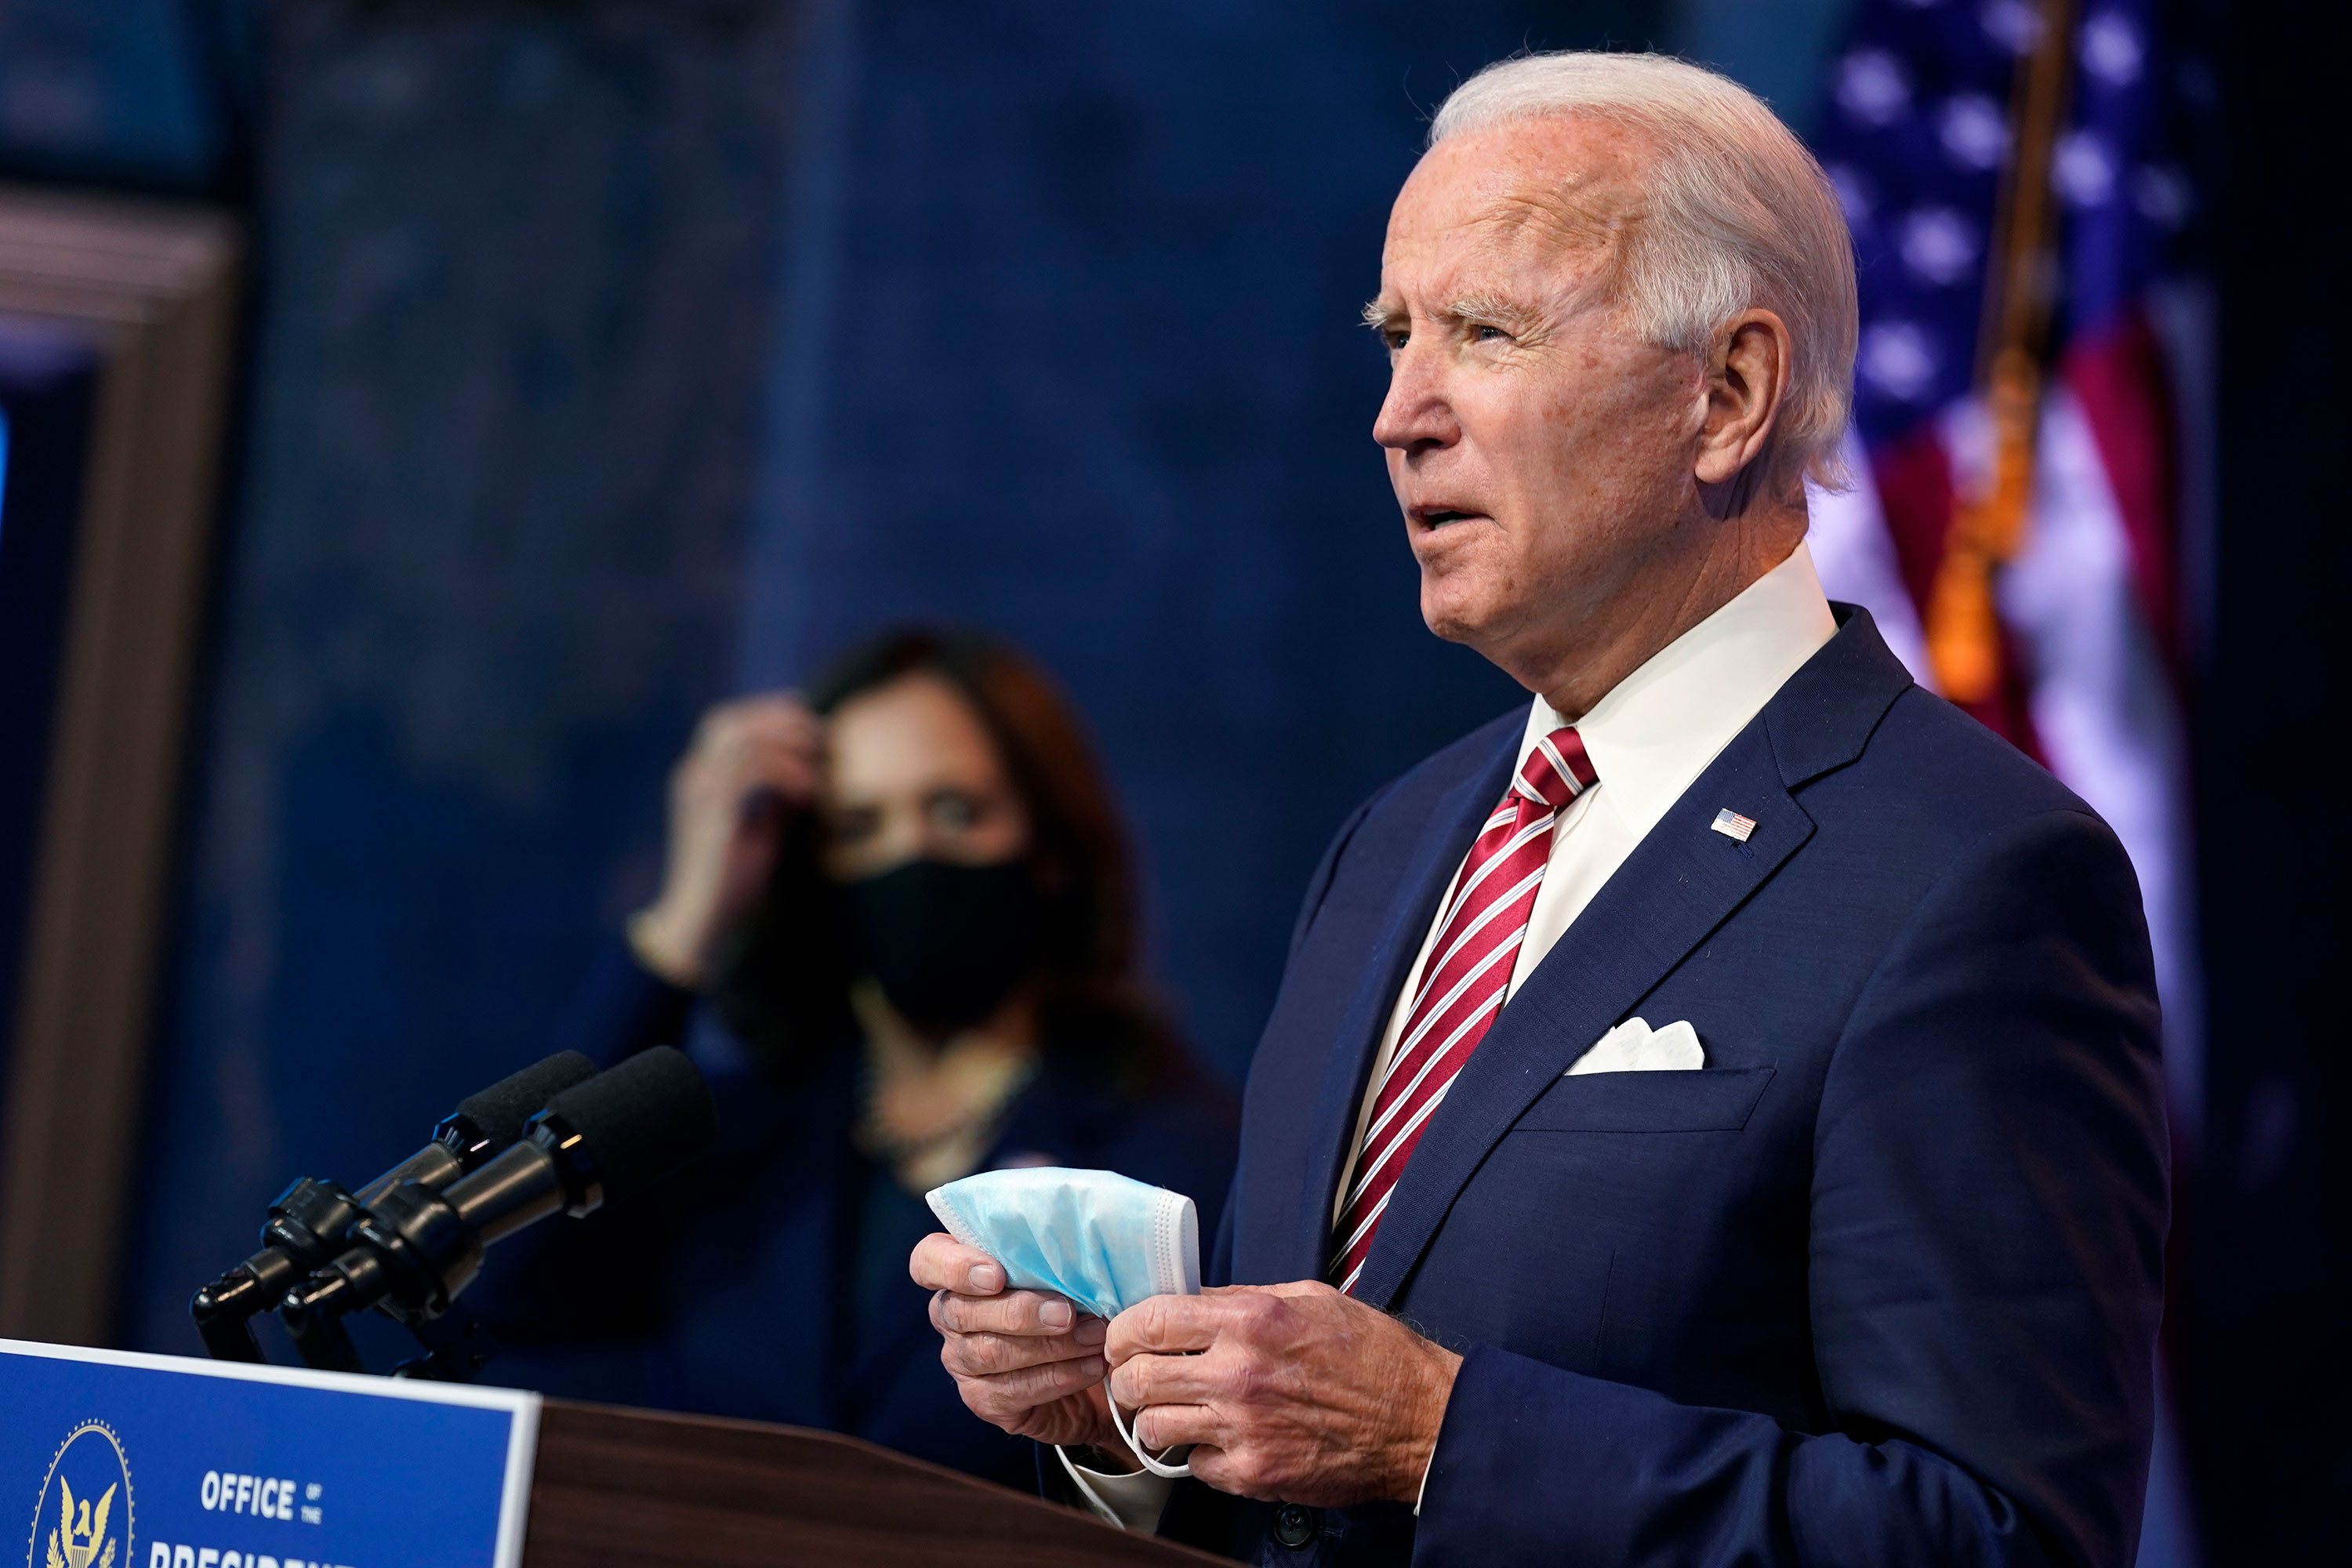 President-elect Joe Biden speaks about economic recovery on November 16 in Wilmington, Delaware